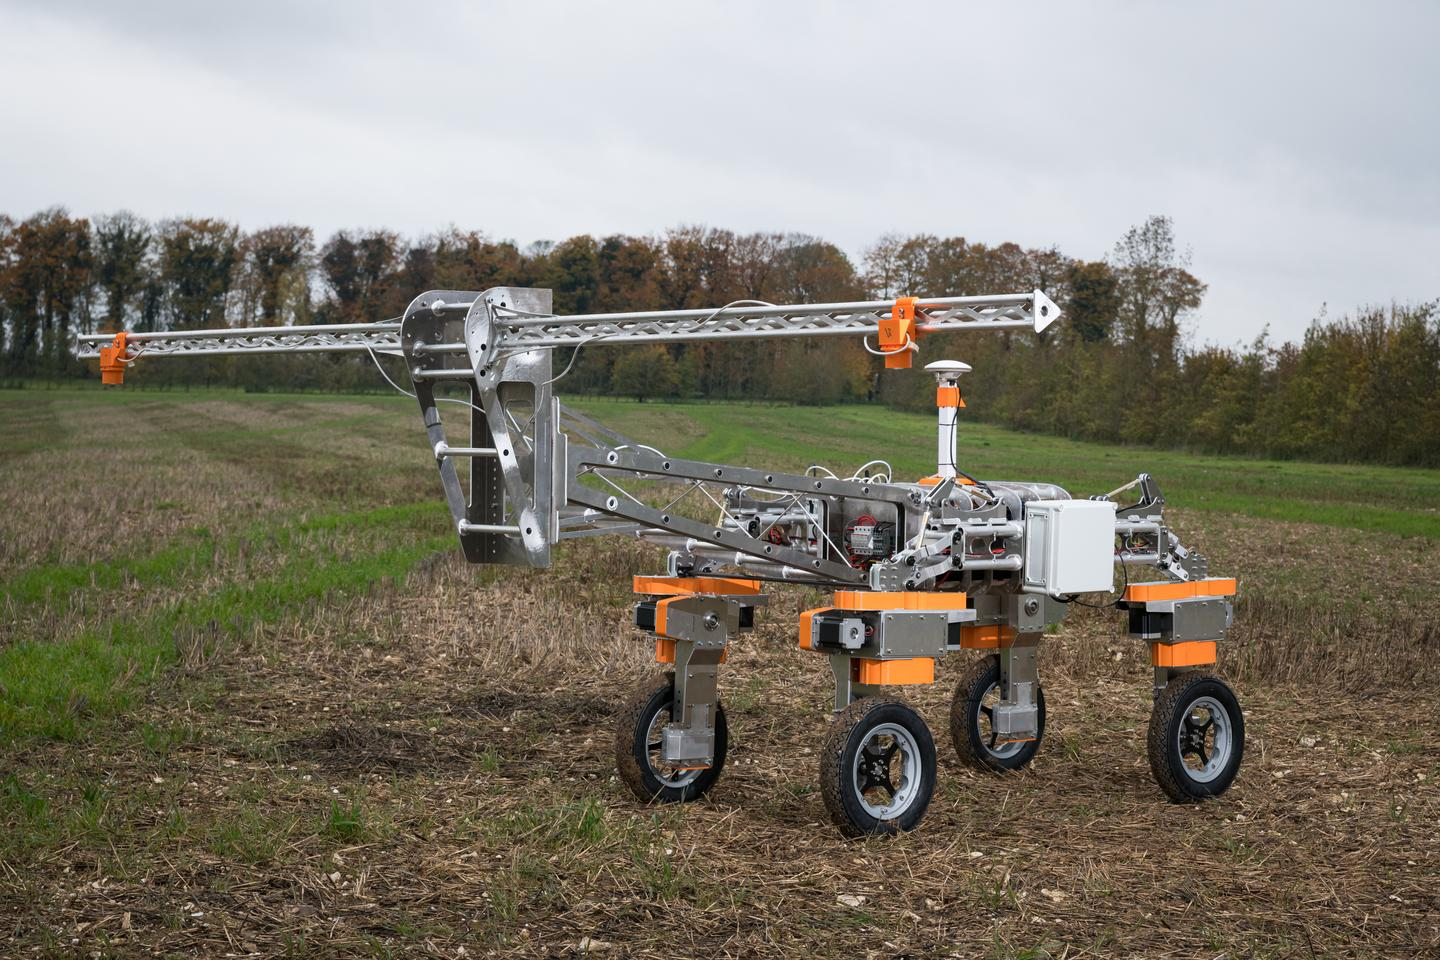 Tom is a weed-mapping robot, covering up 20 hectares (50 ac) a day using autonomous navigation and an onboard camera to tell plants from weeds at a sub-millimeter resolution